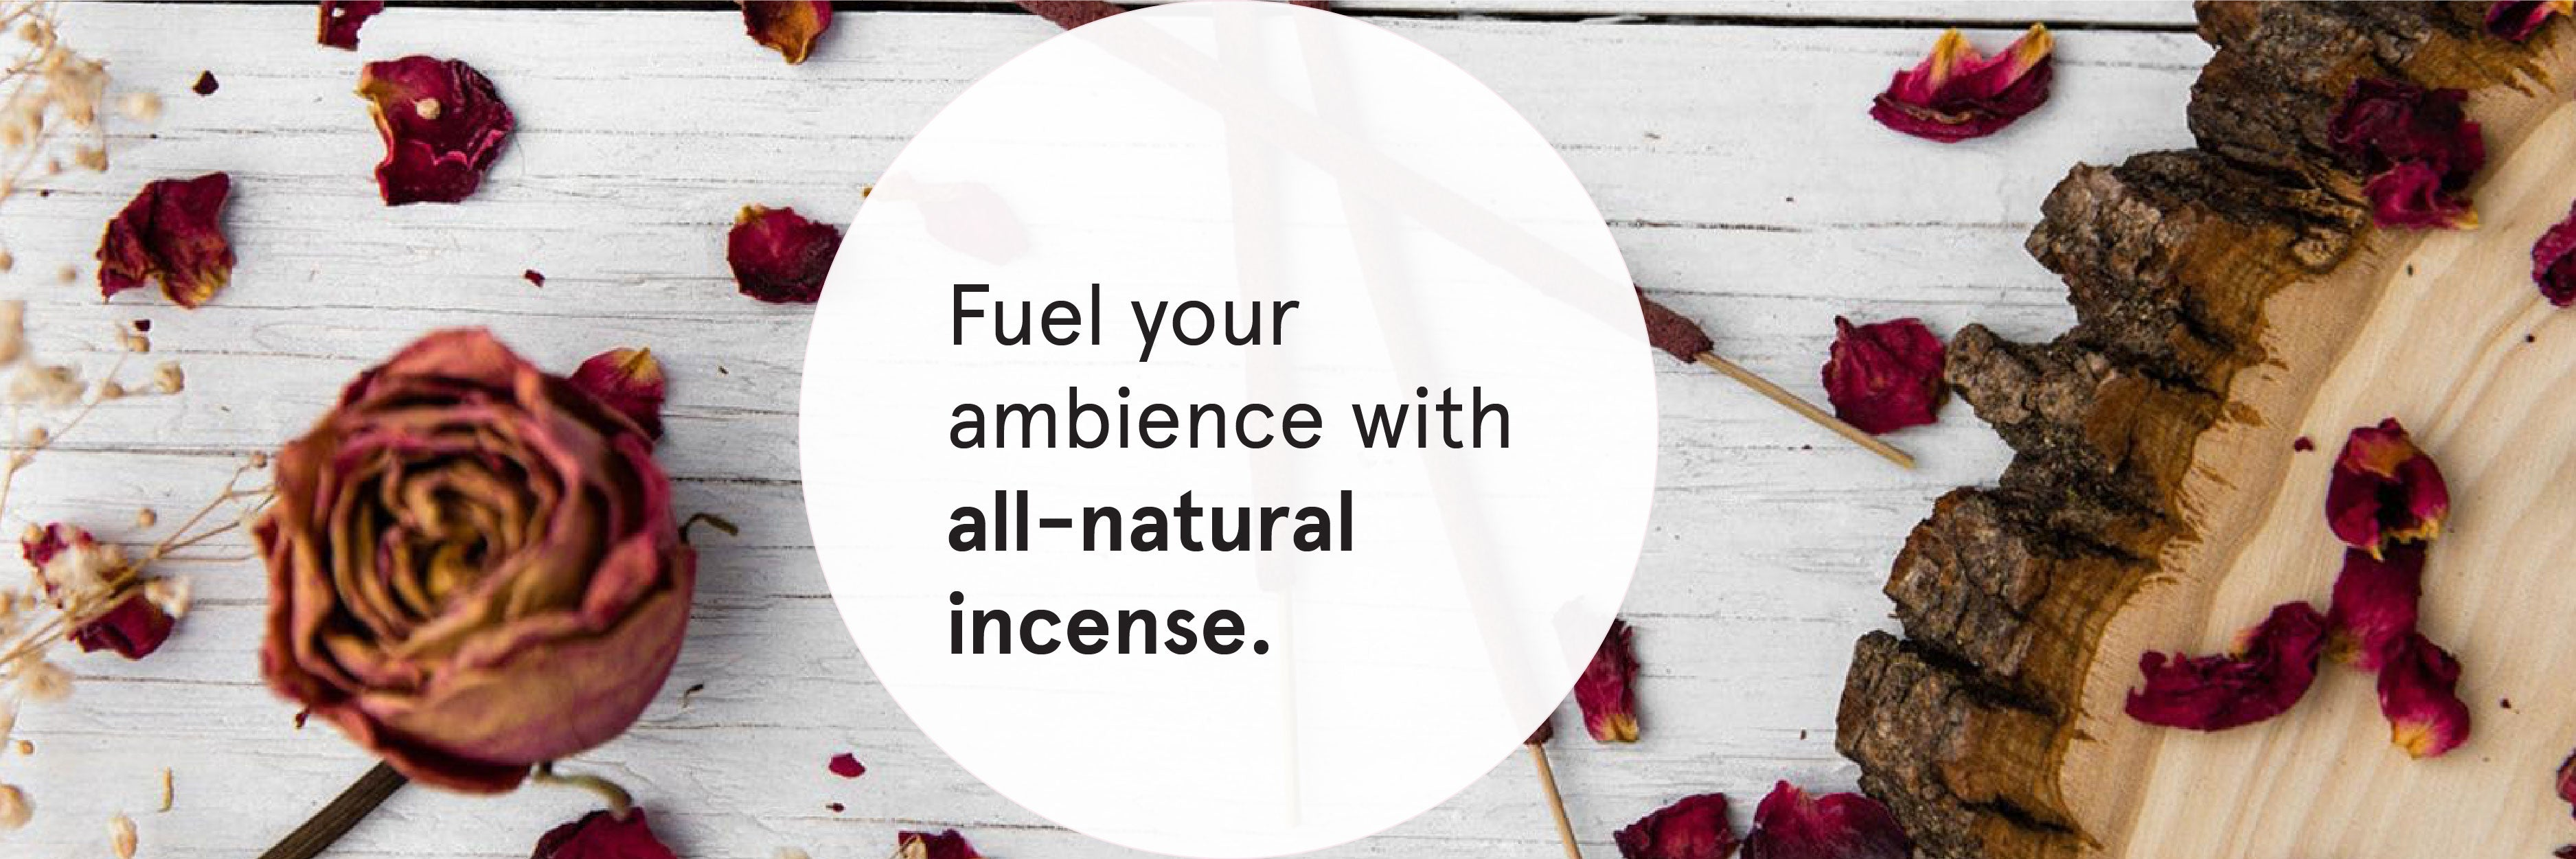 Fuel Your Ambience with All-Natural Incense